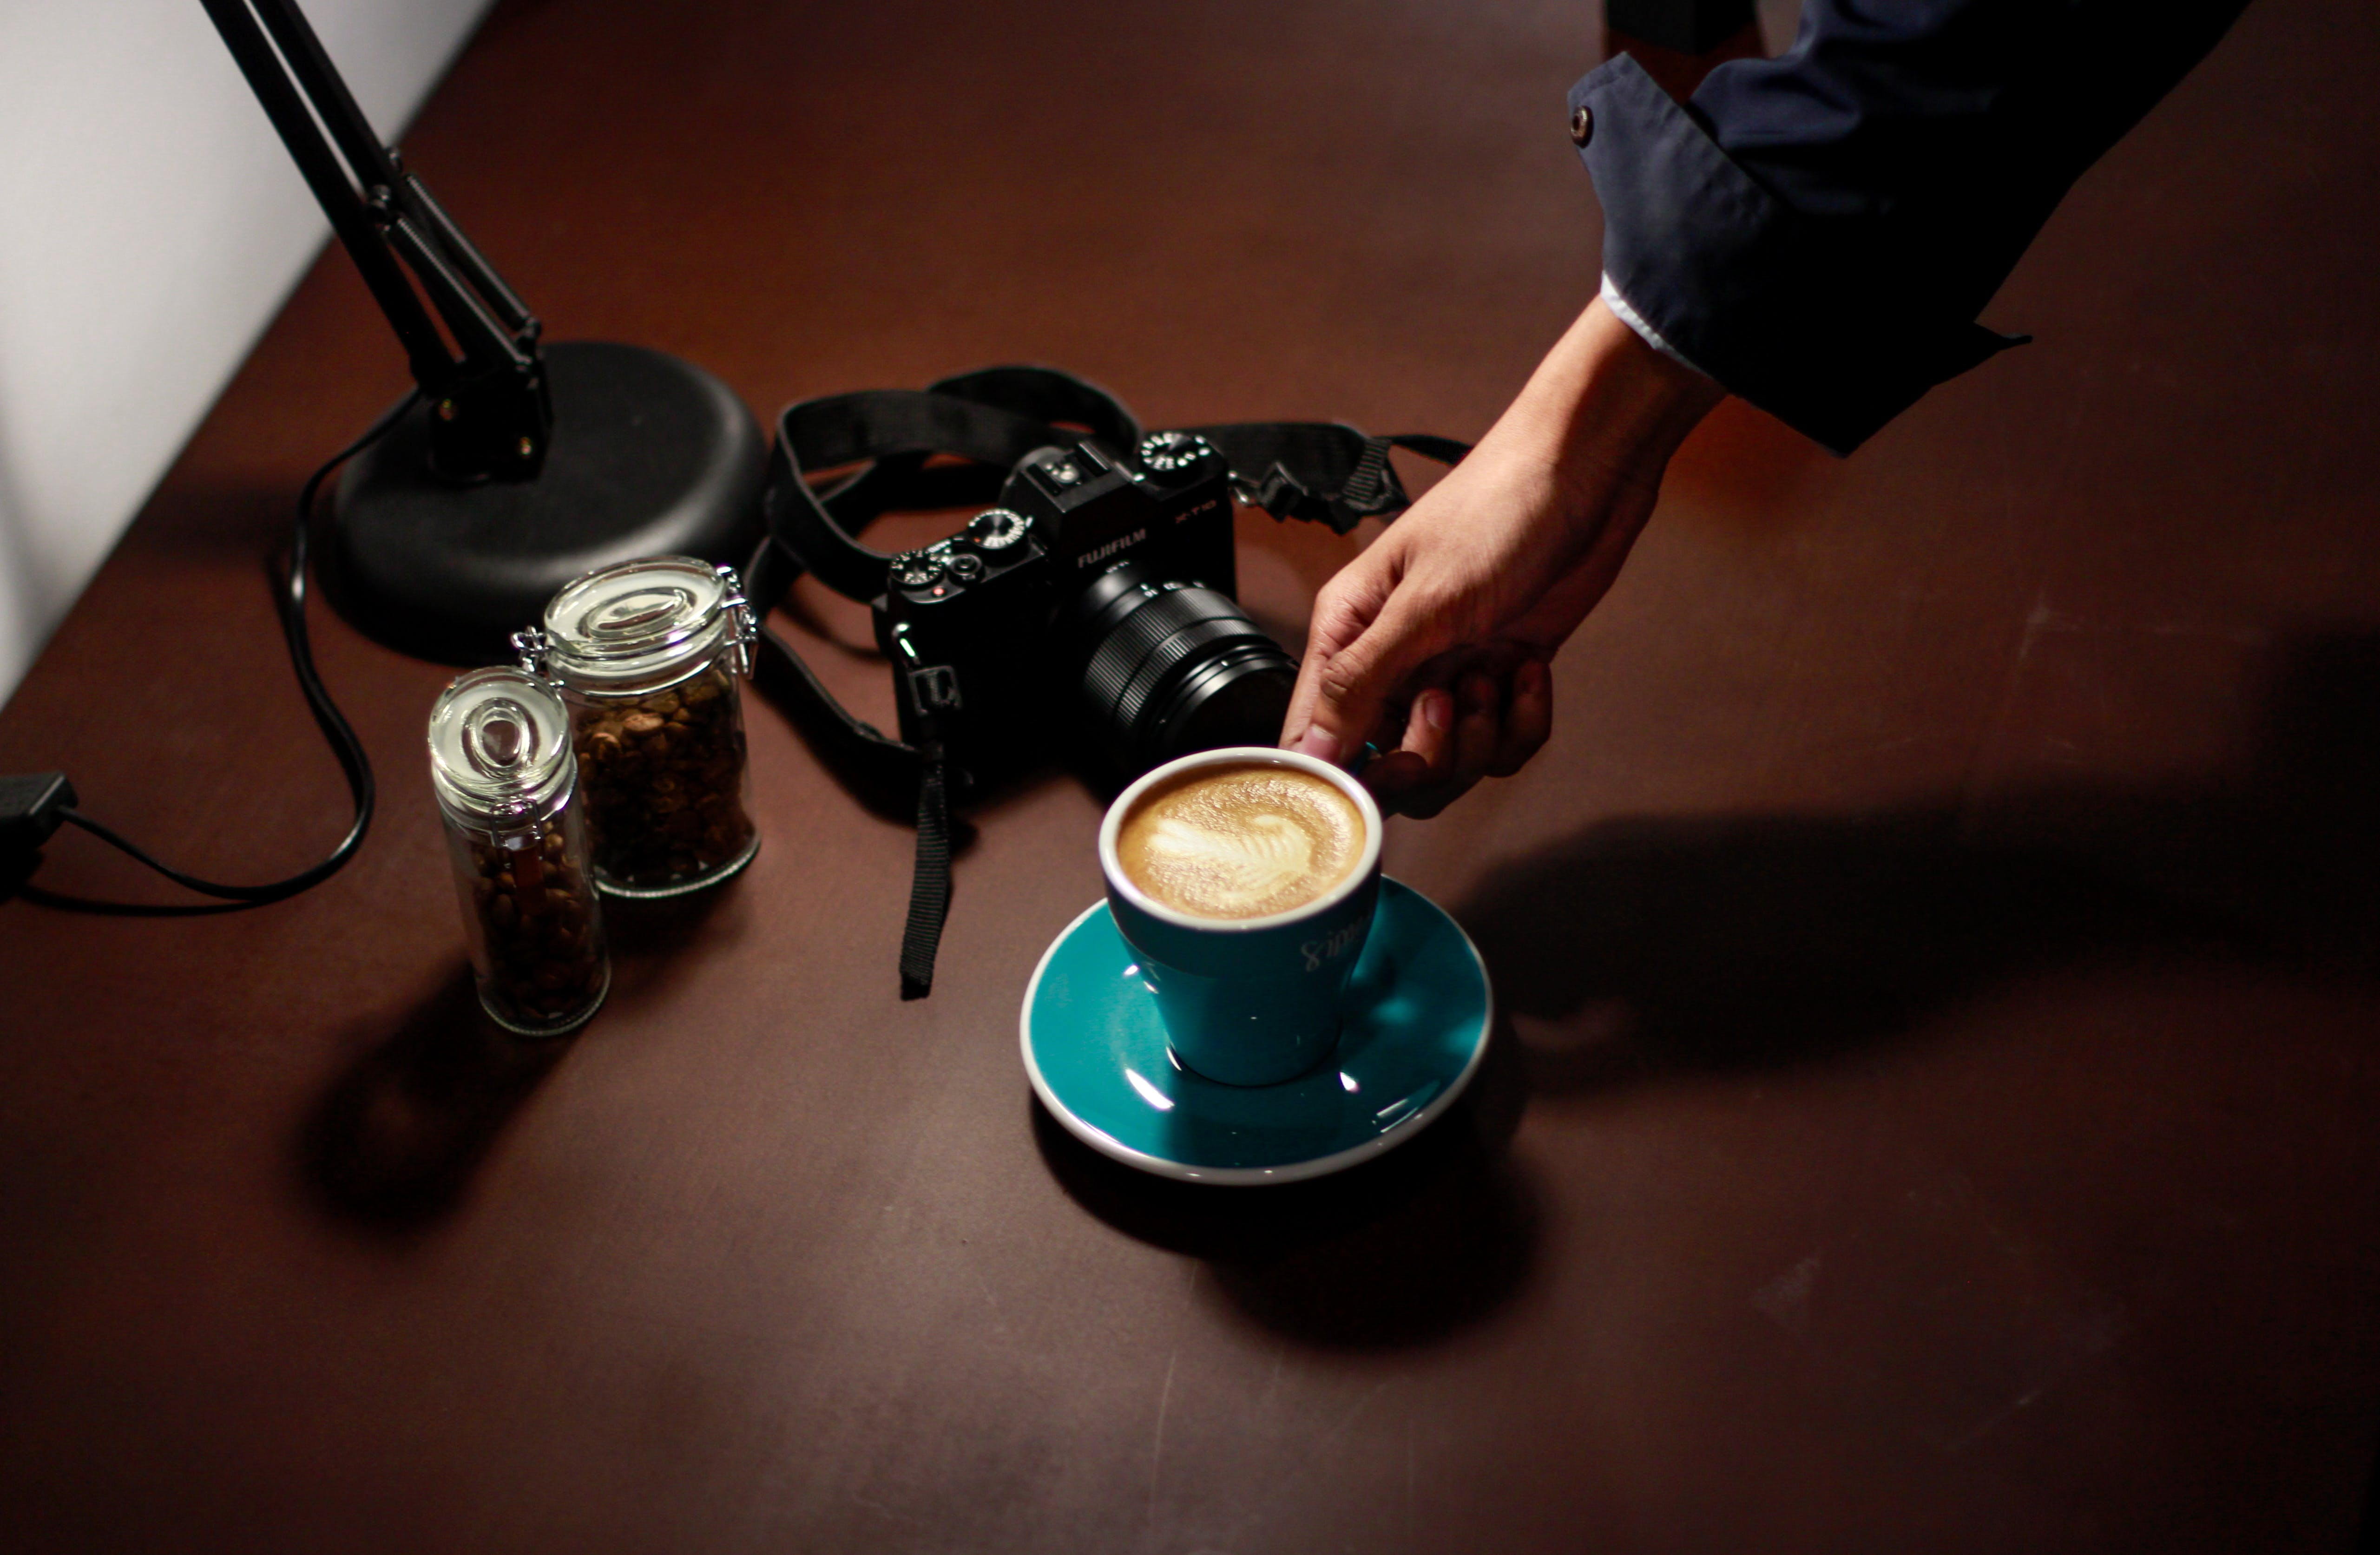 Free stock photo of coffee, cup, hand, camera